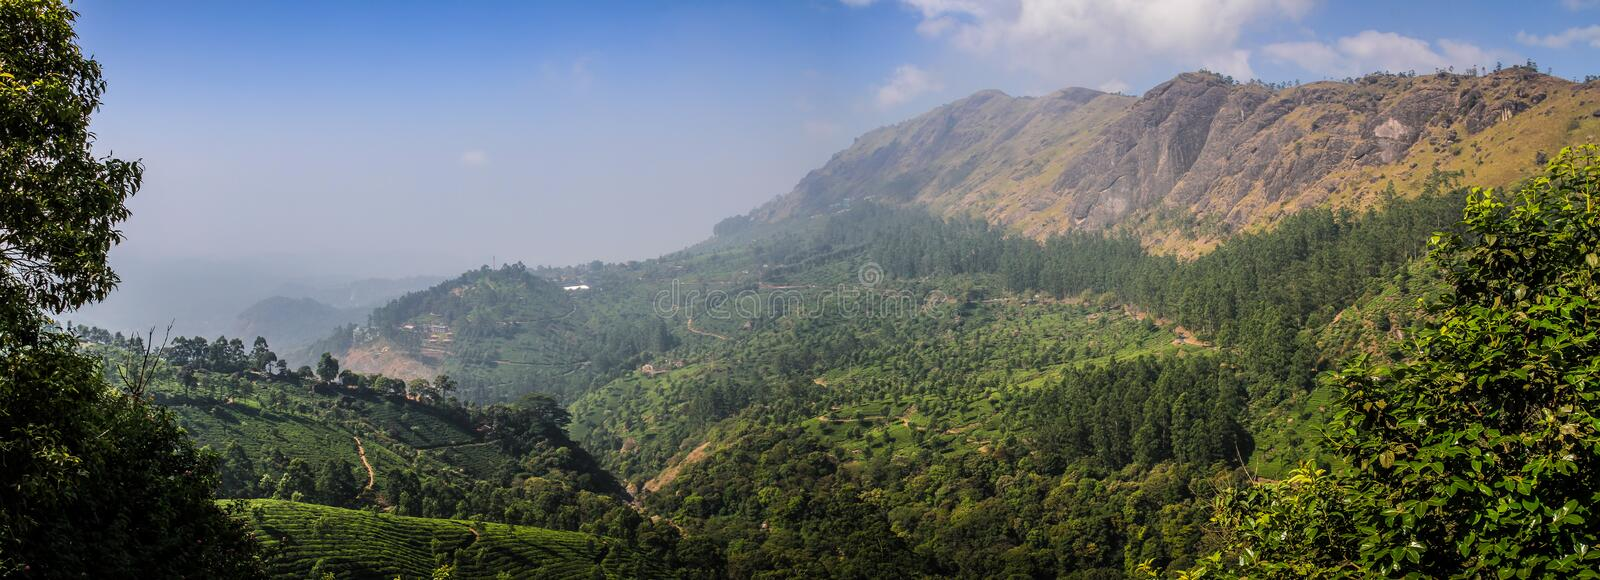 Panoramic view of the green lush tea hills and mountains around Munnar, Kerala, India. Munnar is a town and hill station located in the Idukki district of the royalty free stock photography